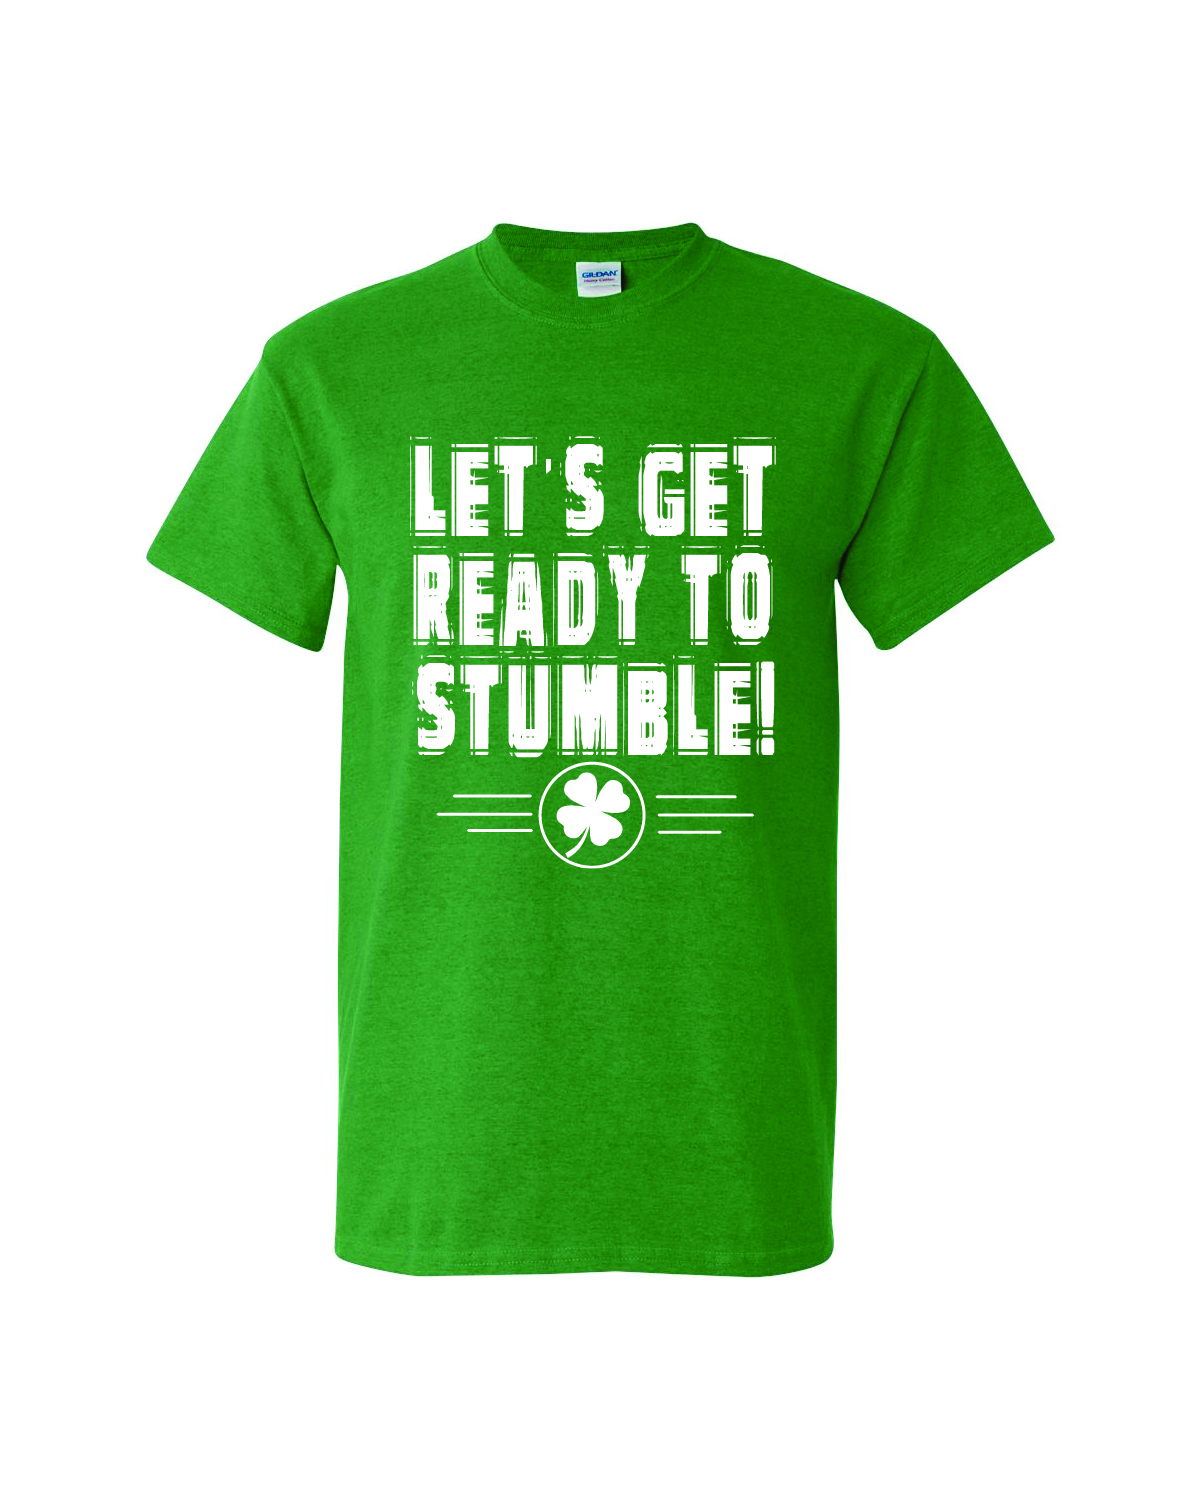 St. Patty's Day Short Sleeve Tee - Ready To Stumble